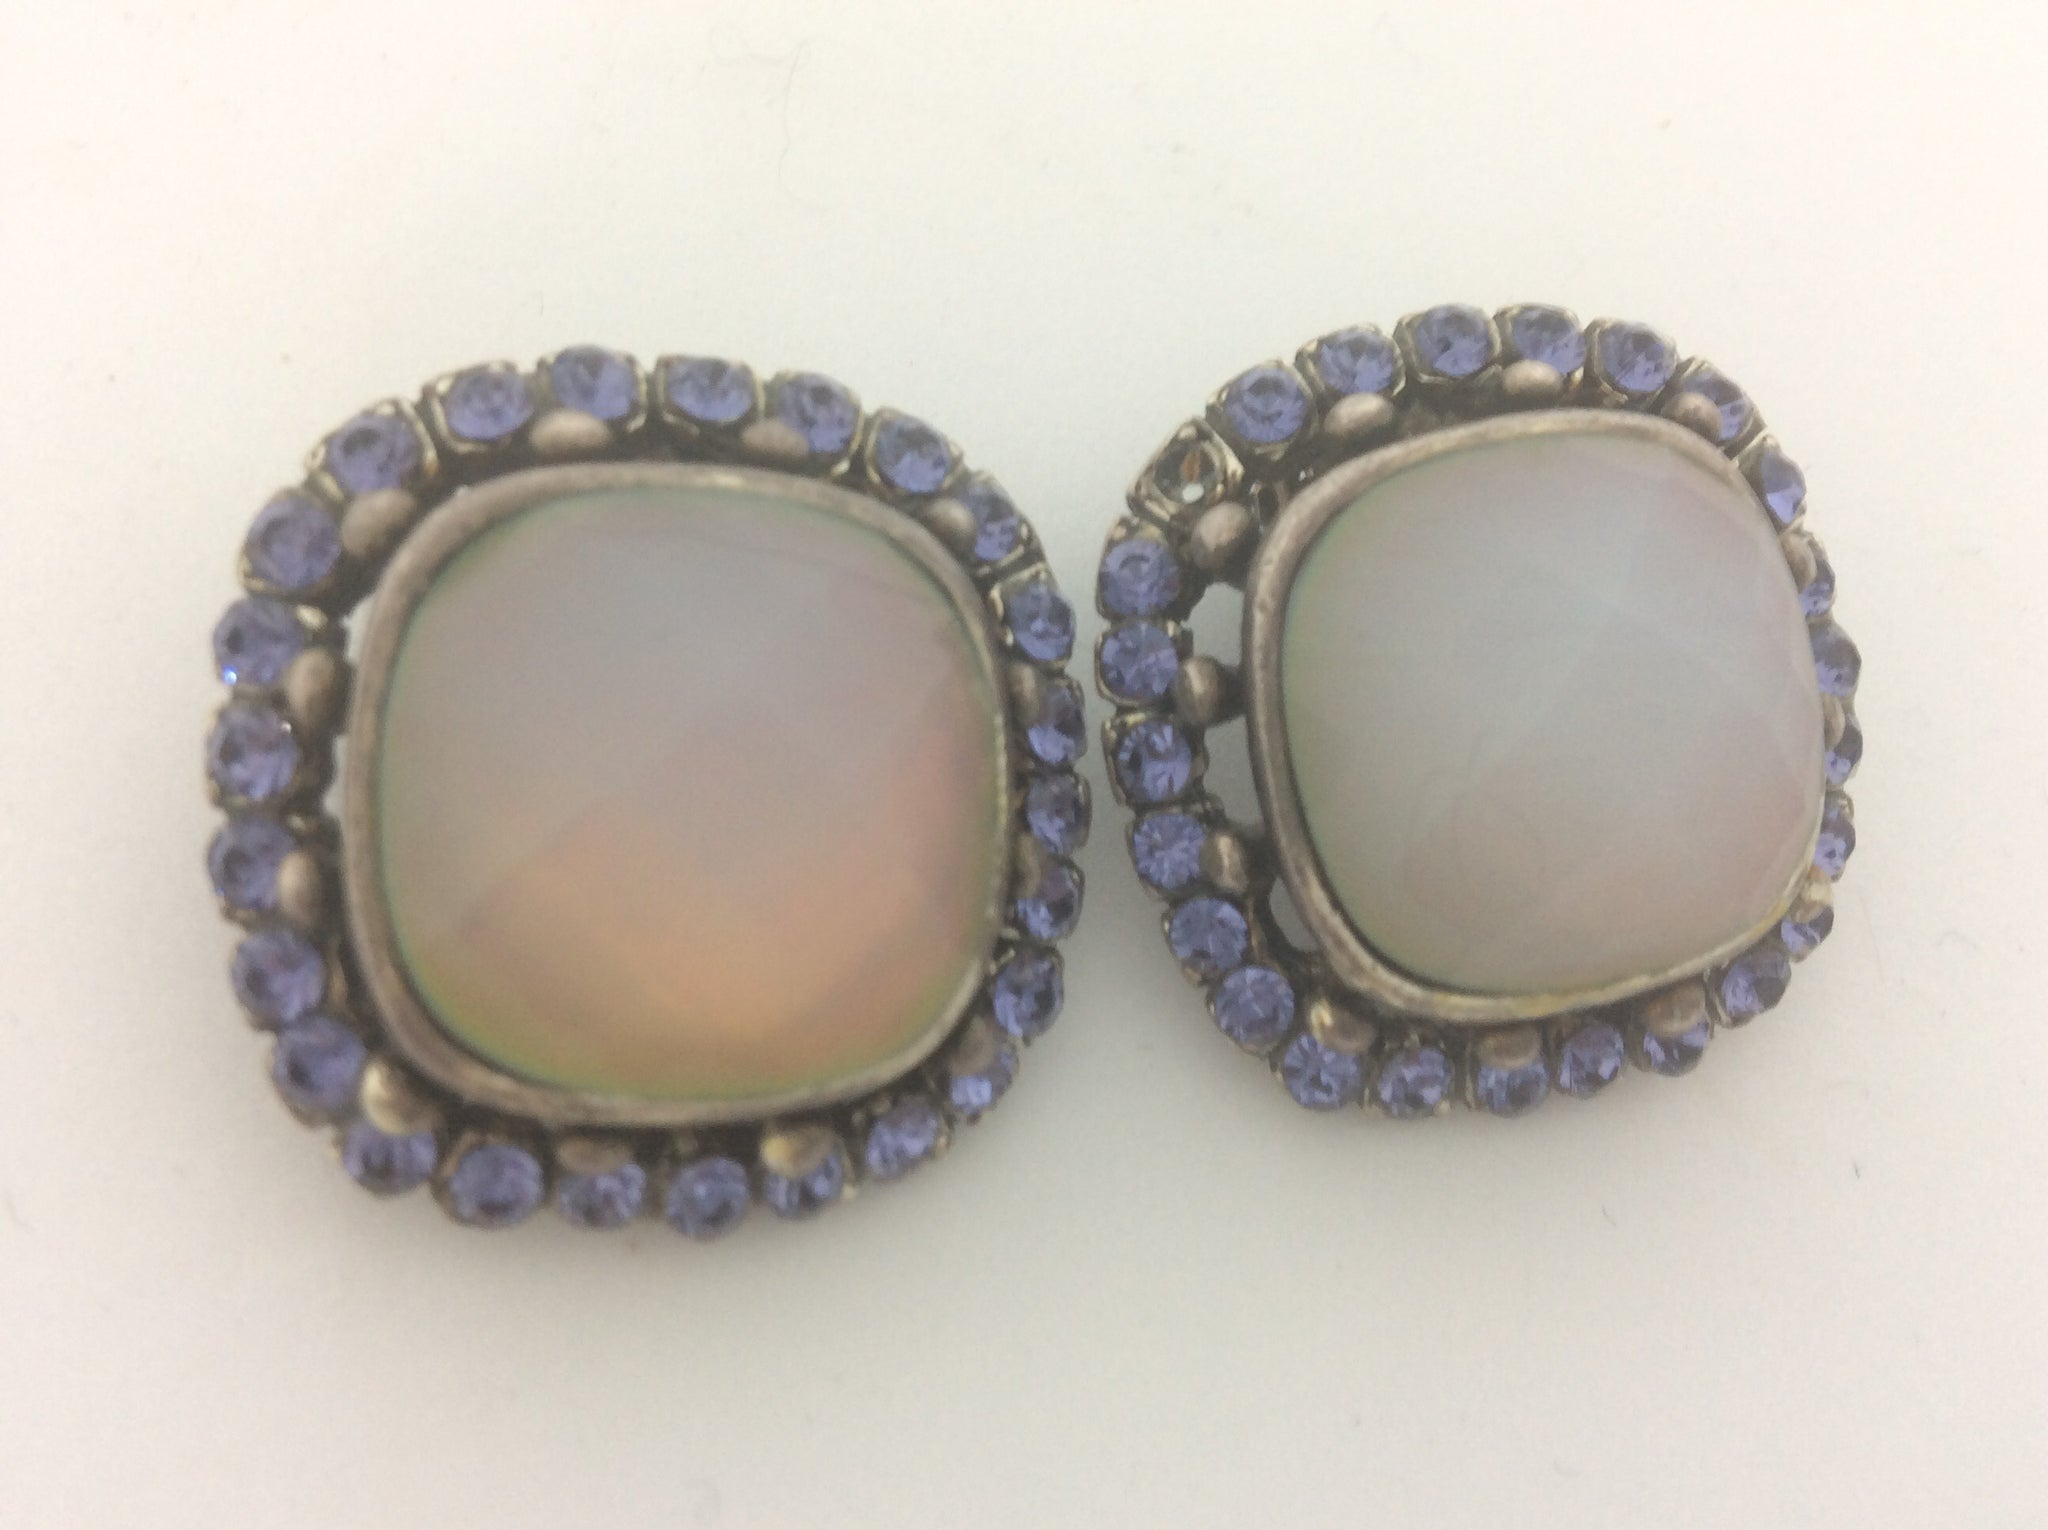 French gold clip on earring with large white opal crystal surrounded by provence lavender crystals